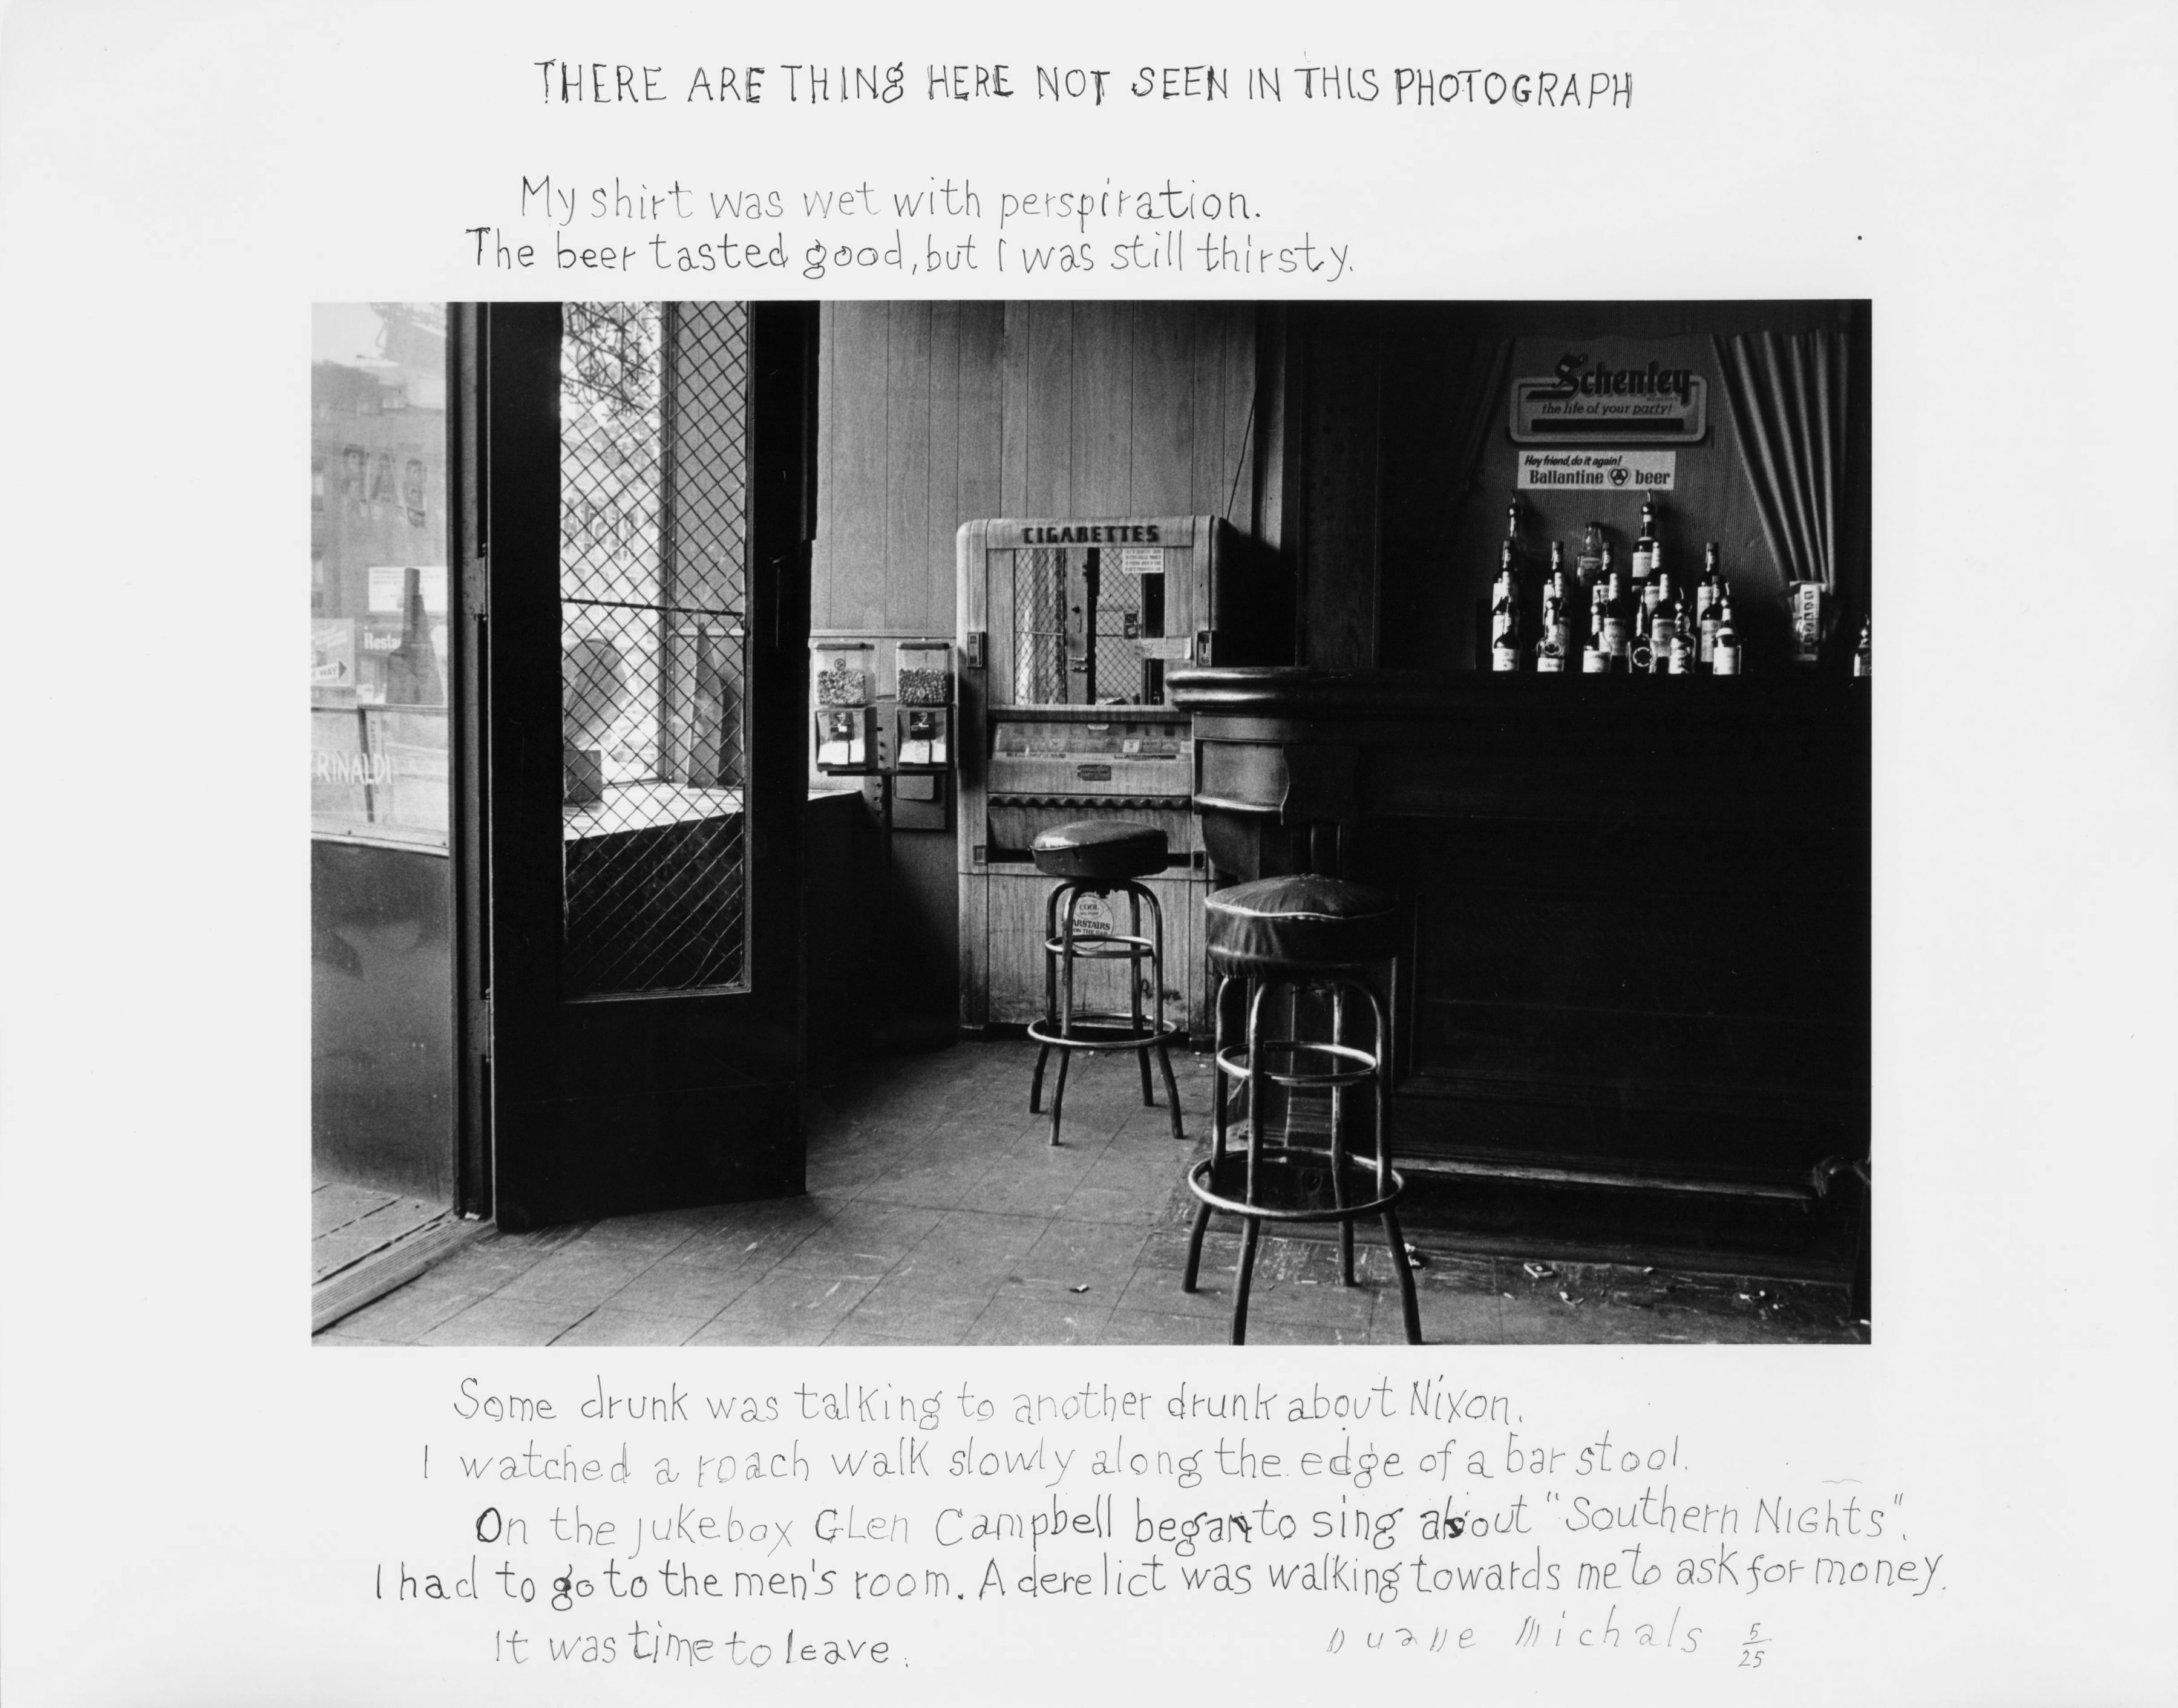 Duane Michals, There Are Things Here Not Seen in This Photograph, 1977/1977